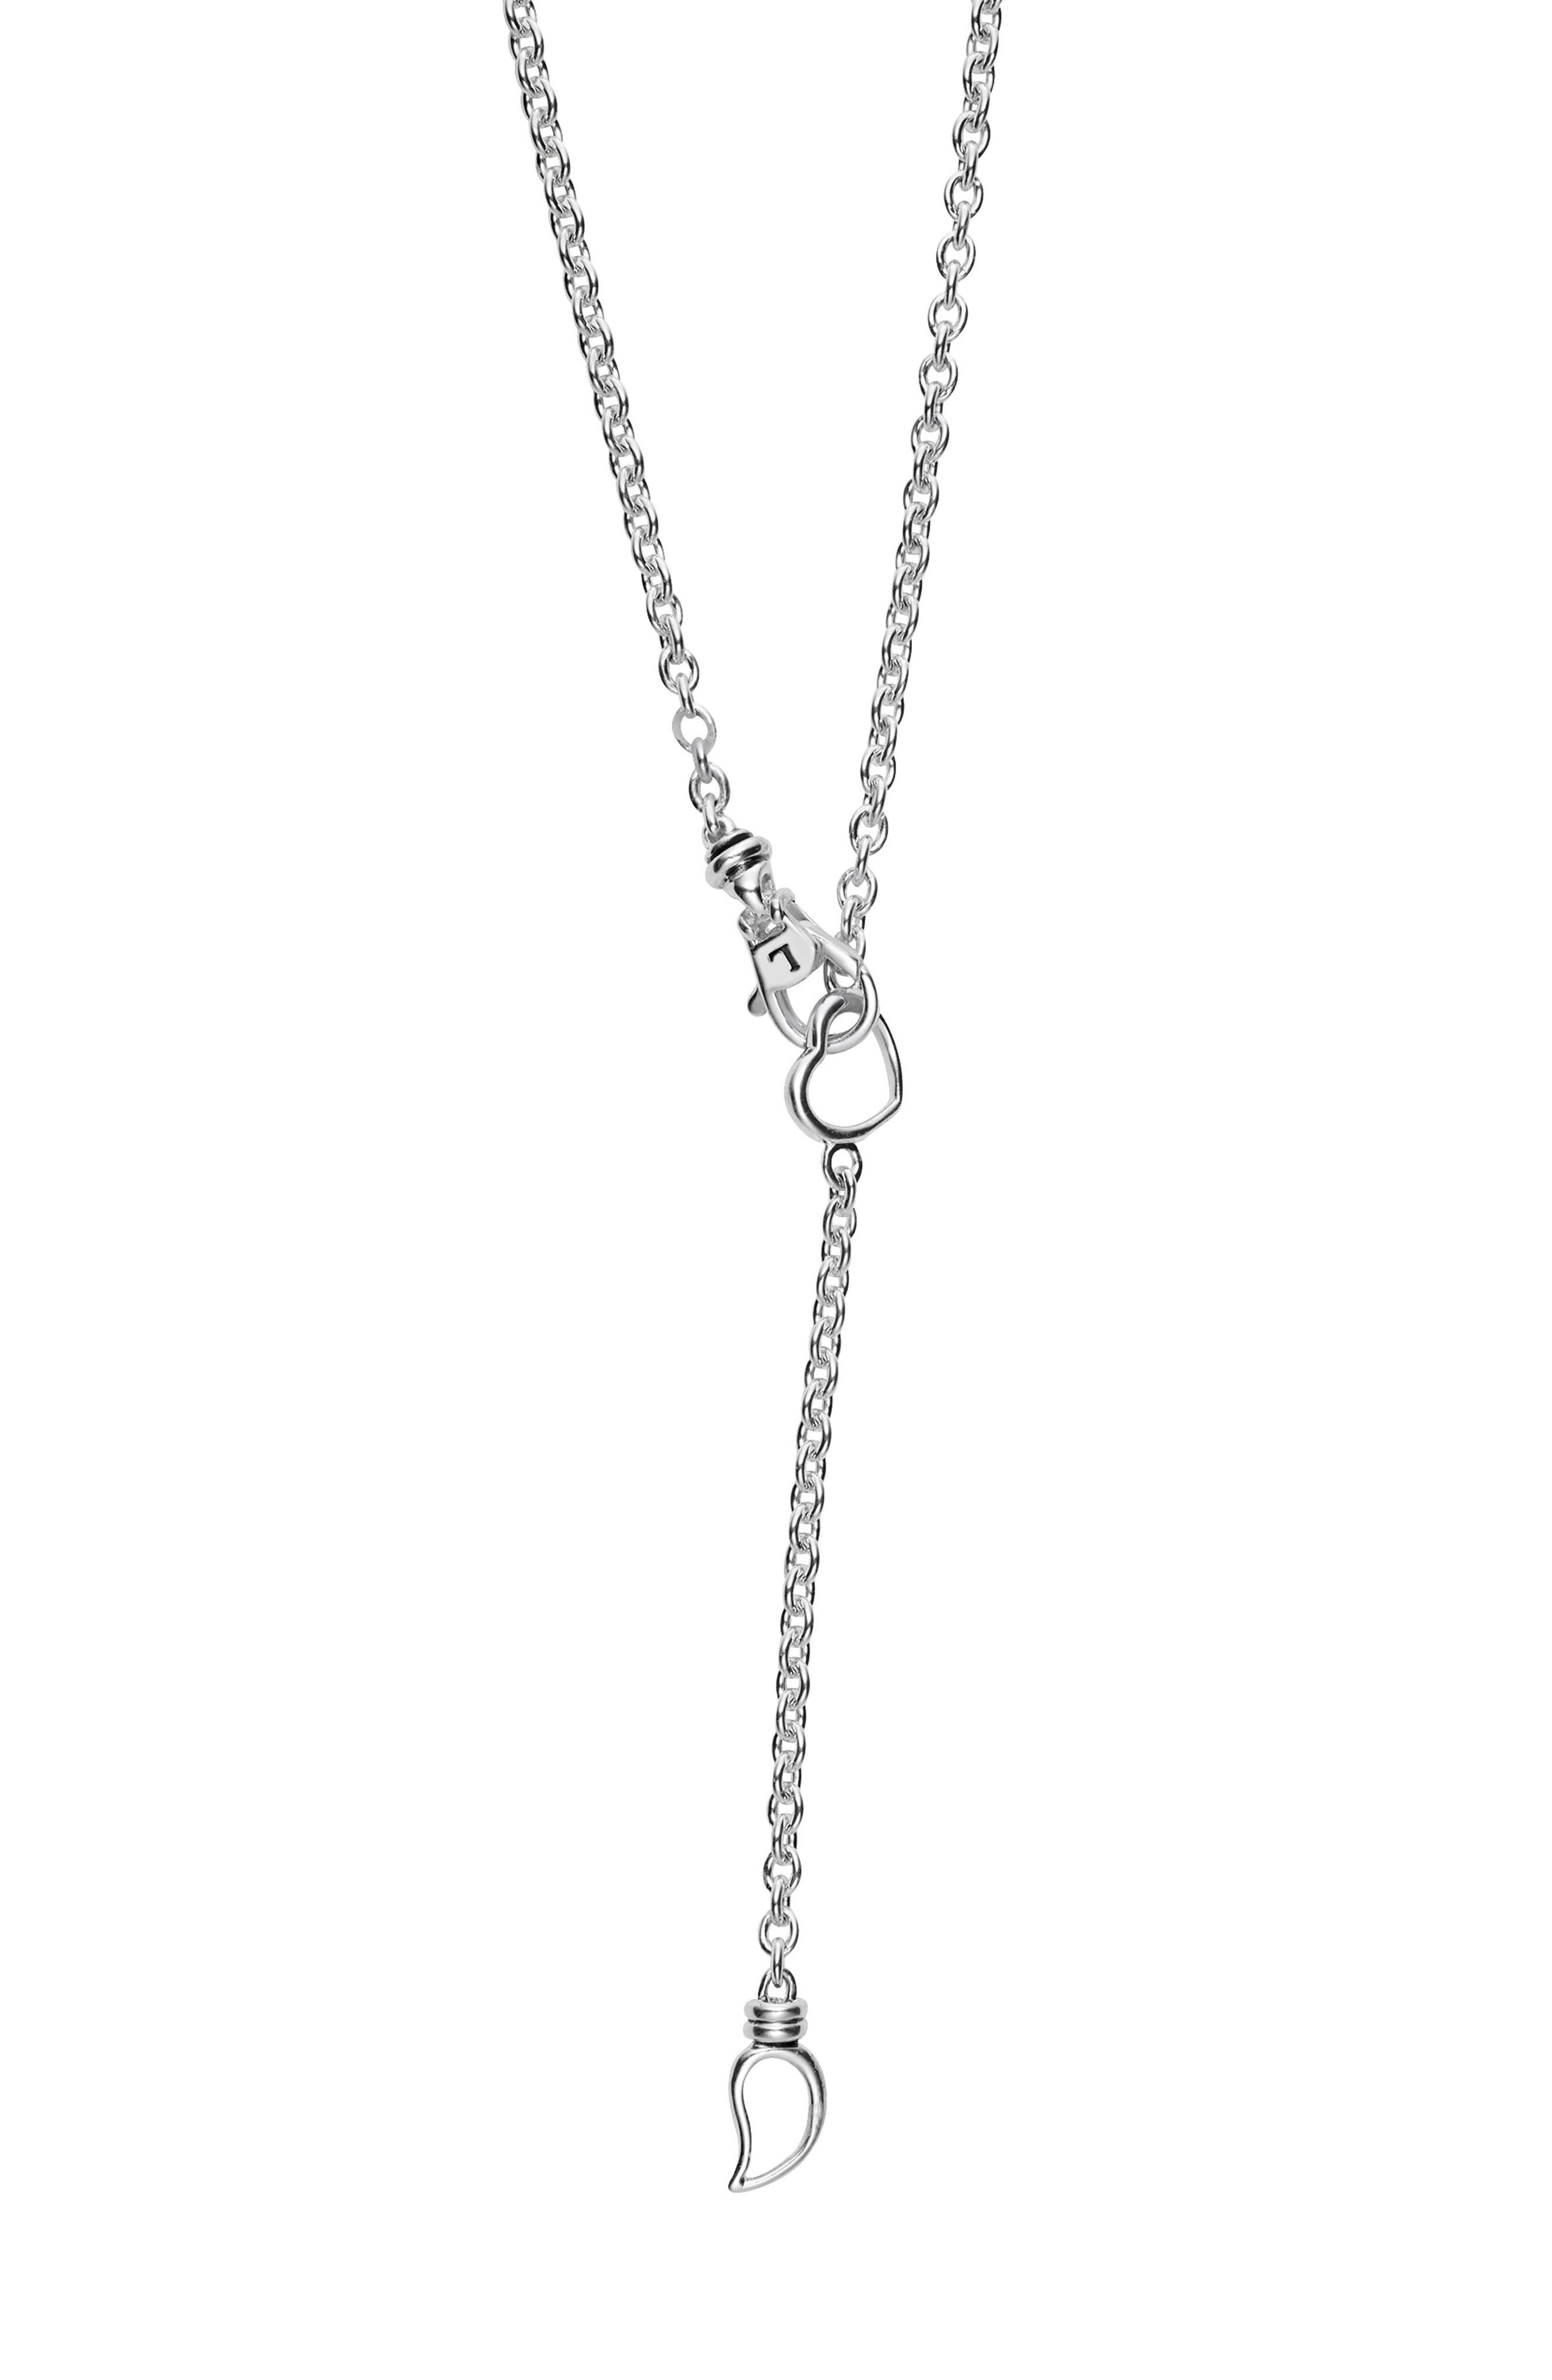 Beloved Diamond Dream Chain Necklace,                             Alternate thumbnail 3, color,                             Silver/ Diamond